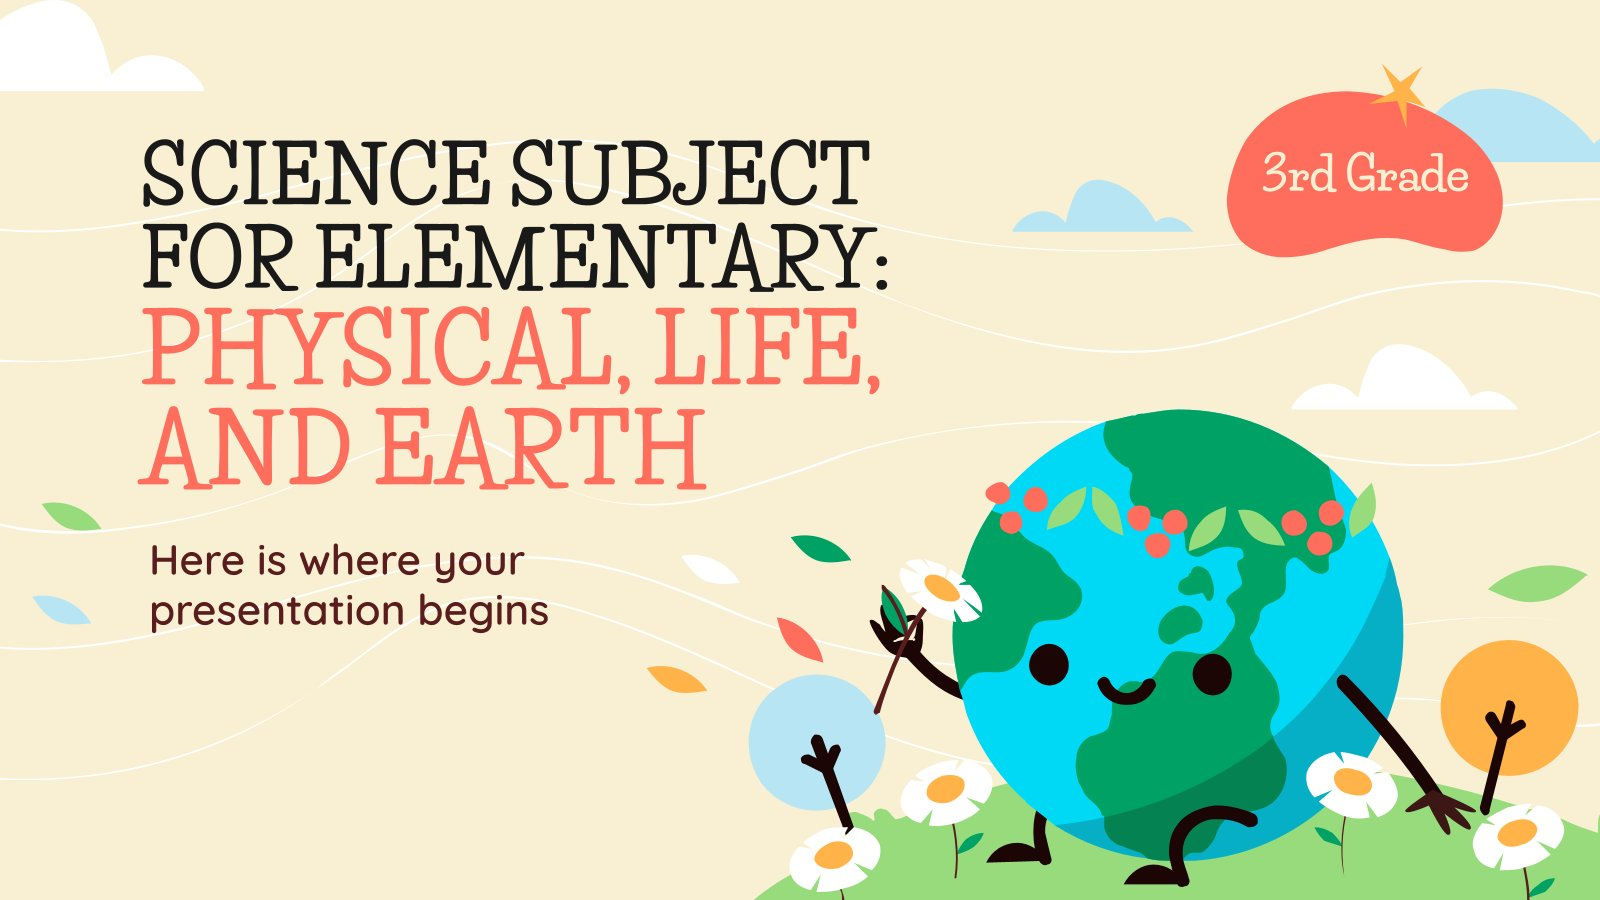 Science Subject for Elementary - 3rd Grade: Physical, Life, and Earth presentation template